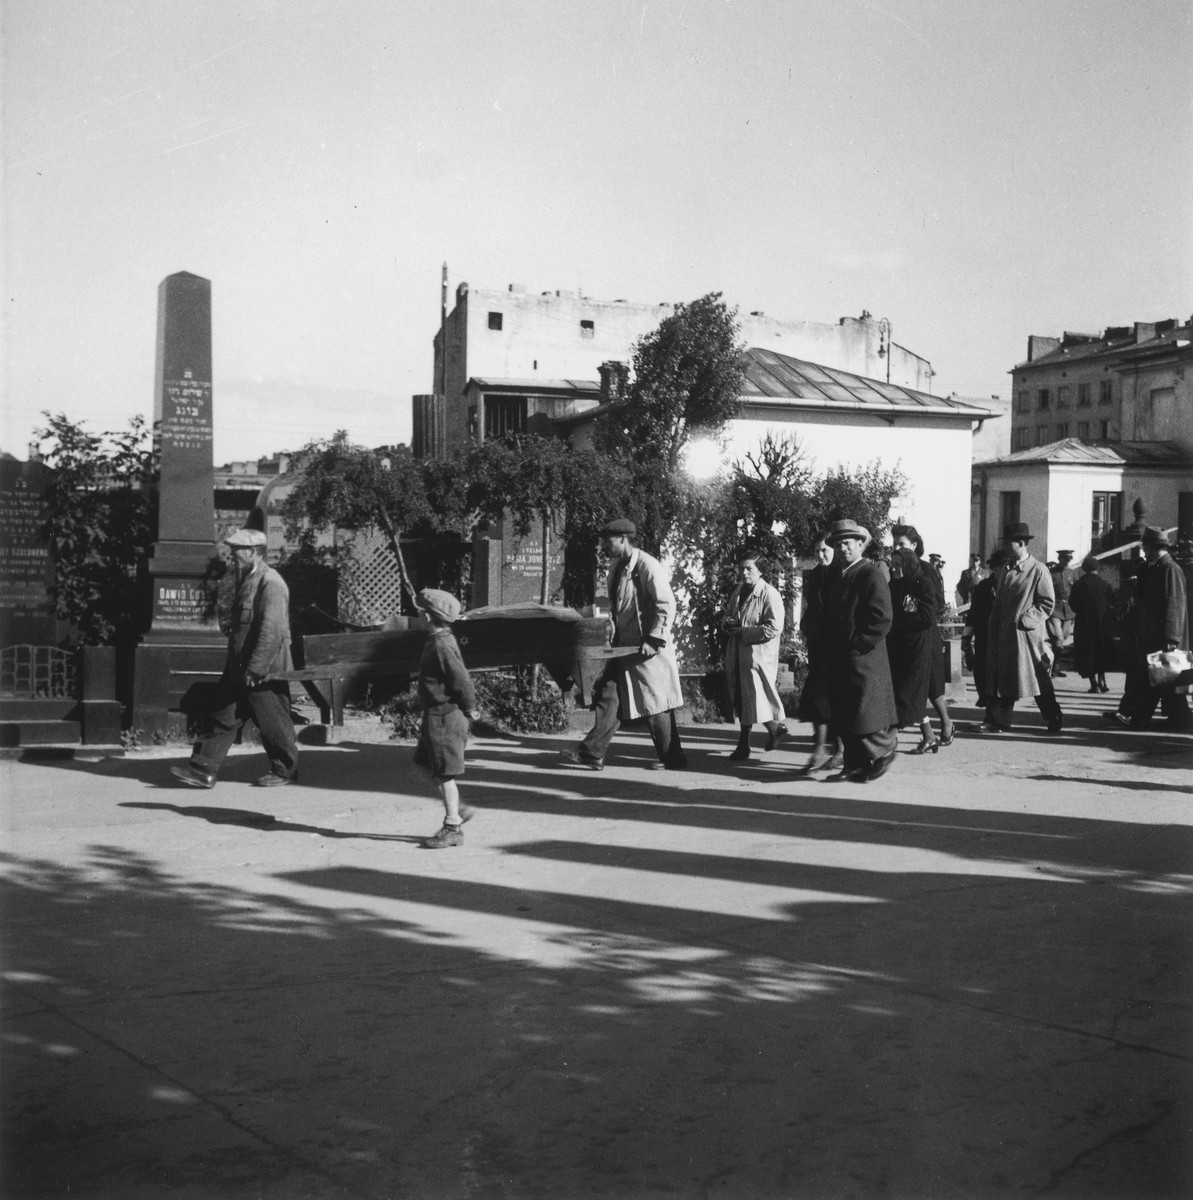 """A burial procession in the Warsaw ghetto cemetery.  Joest's original caption reads: """"This was a 'better' sort of funeral.  The corpse was not put on a car but was carried wrapped in a shroud.  A small procession of relatives followed behind.  Evidently a well-do-do family - up to that point."""""""